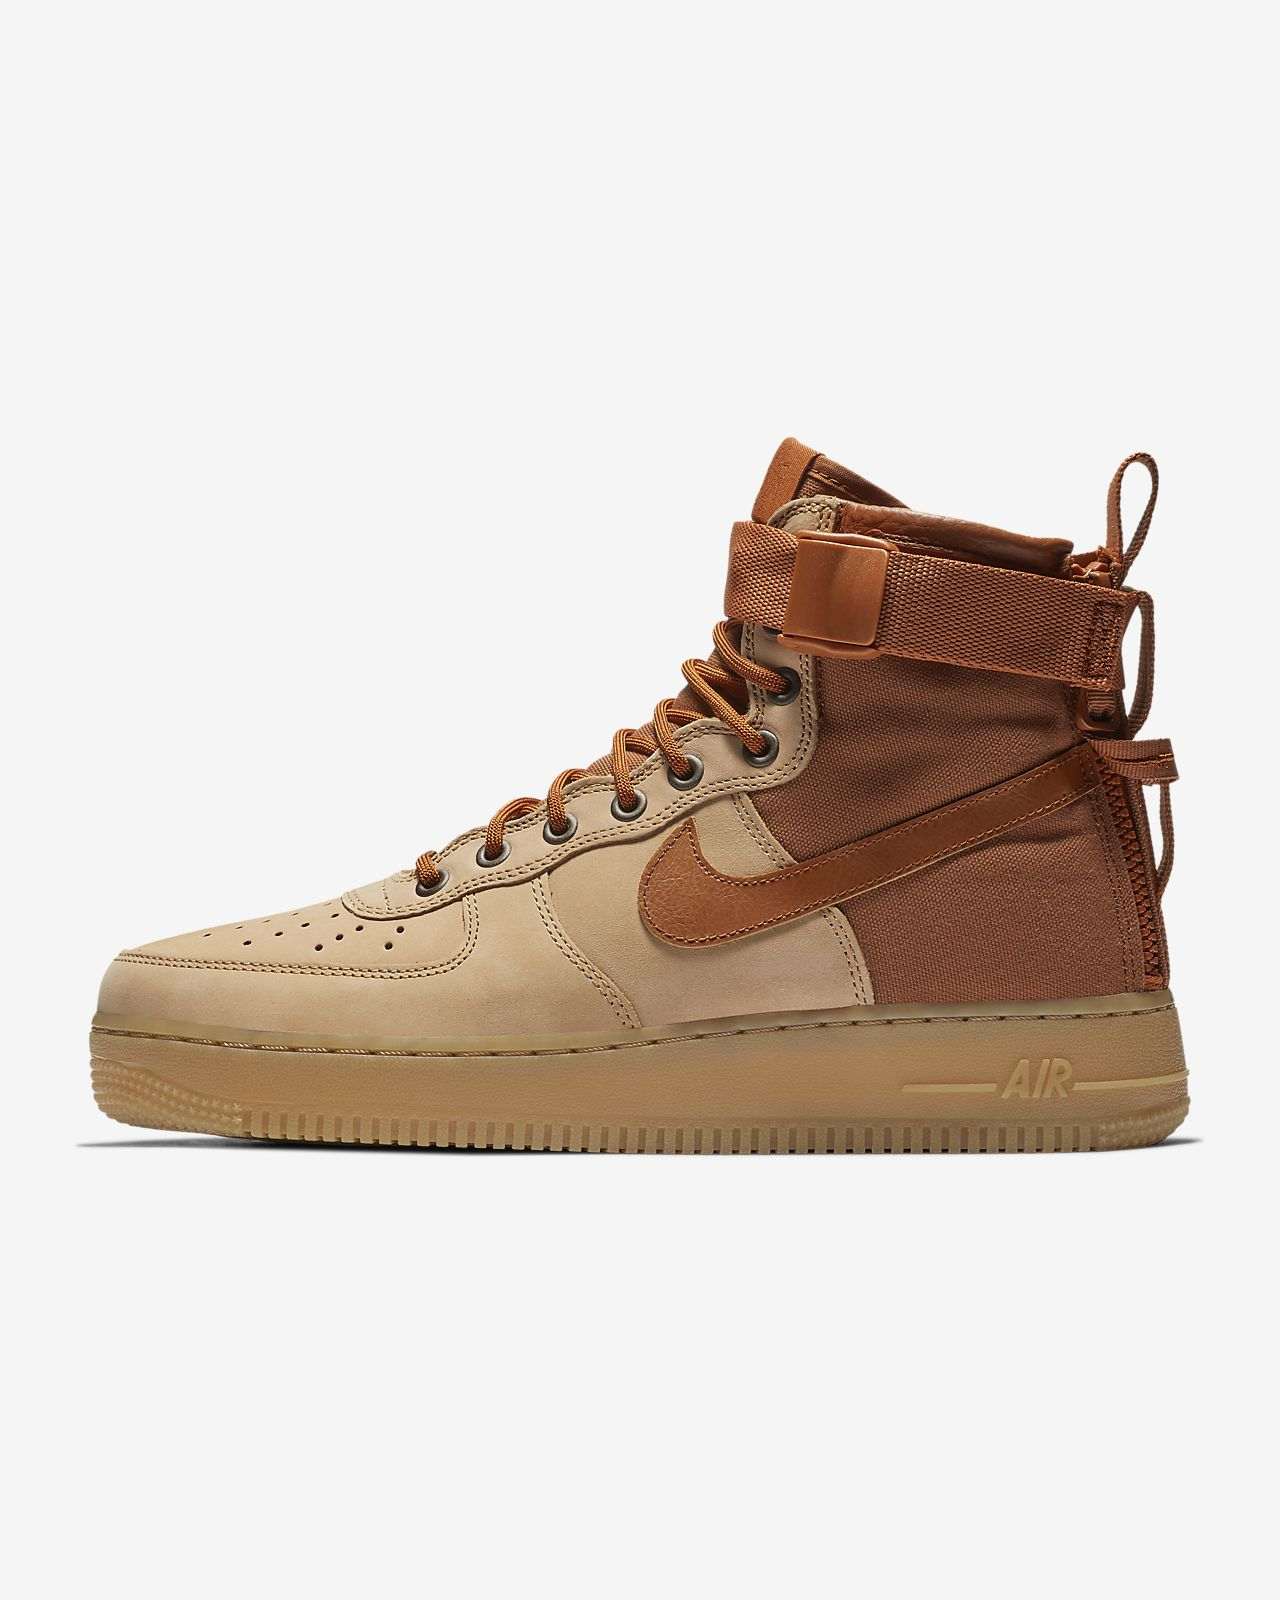 premium selection 2c495 66ea7 Nike SF Air Force 1 Mid Premium Men's Shoe